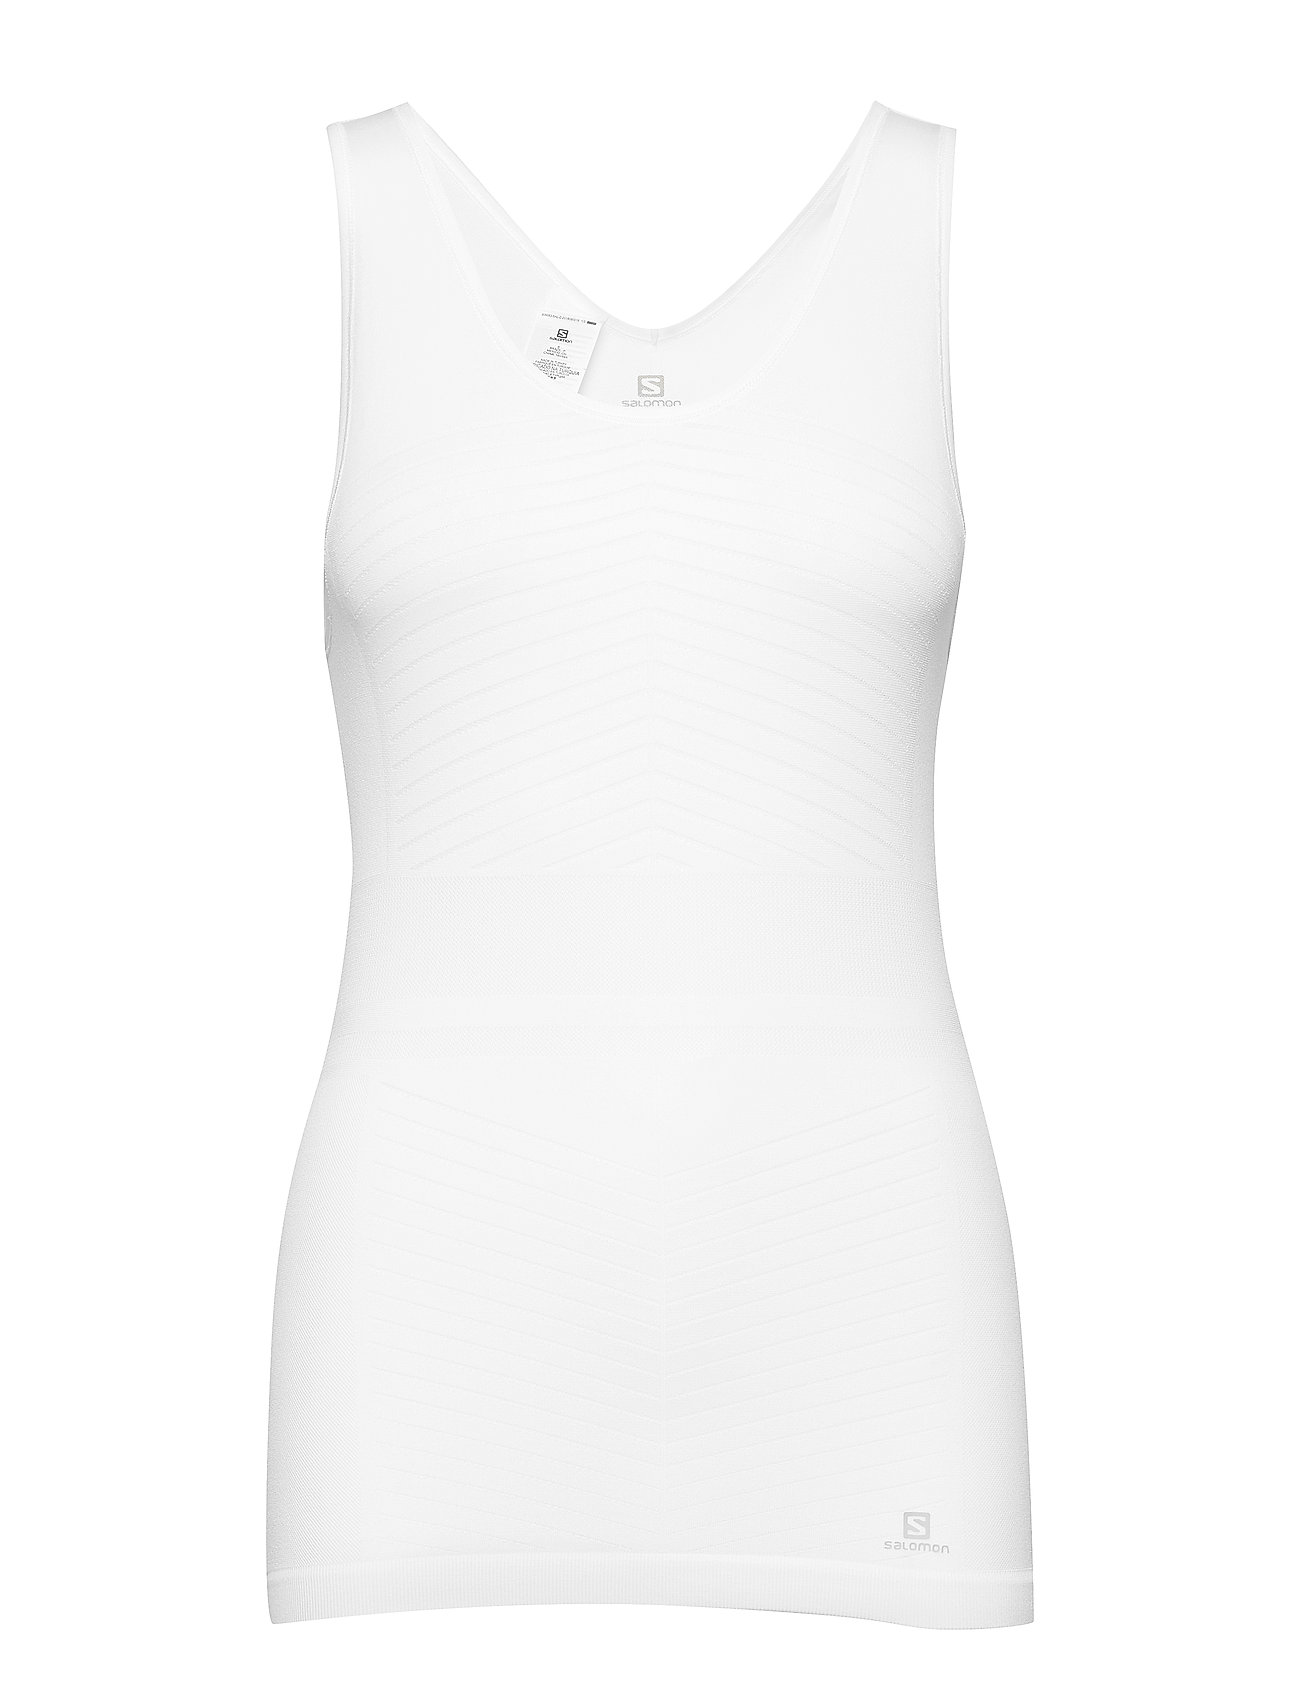 Salomon 'ELEVATE MOVE'ON TANK W White - WHITE